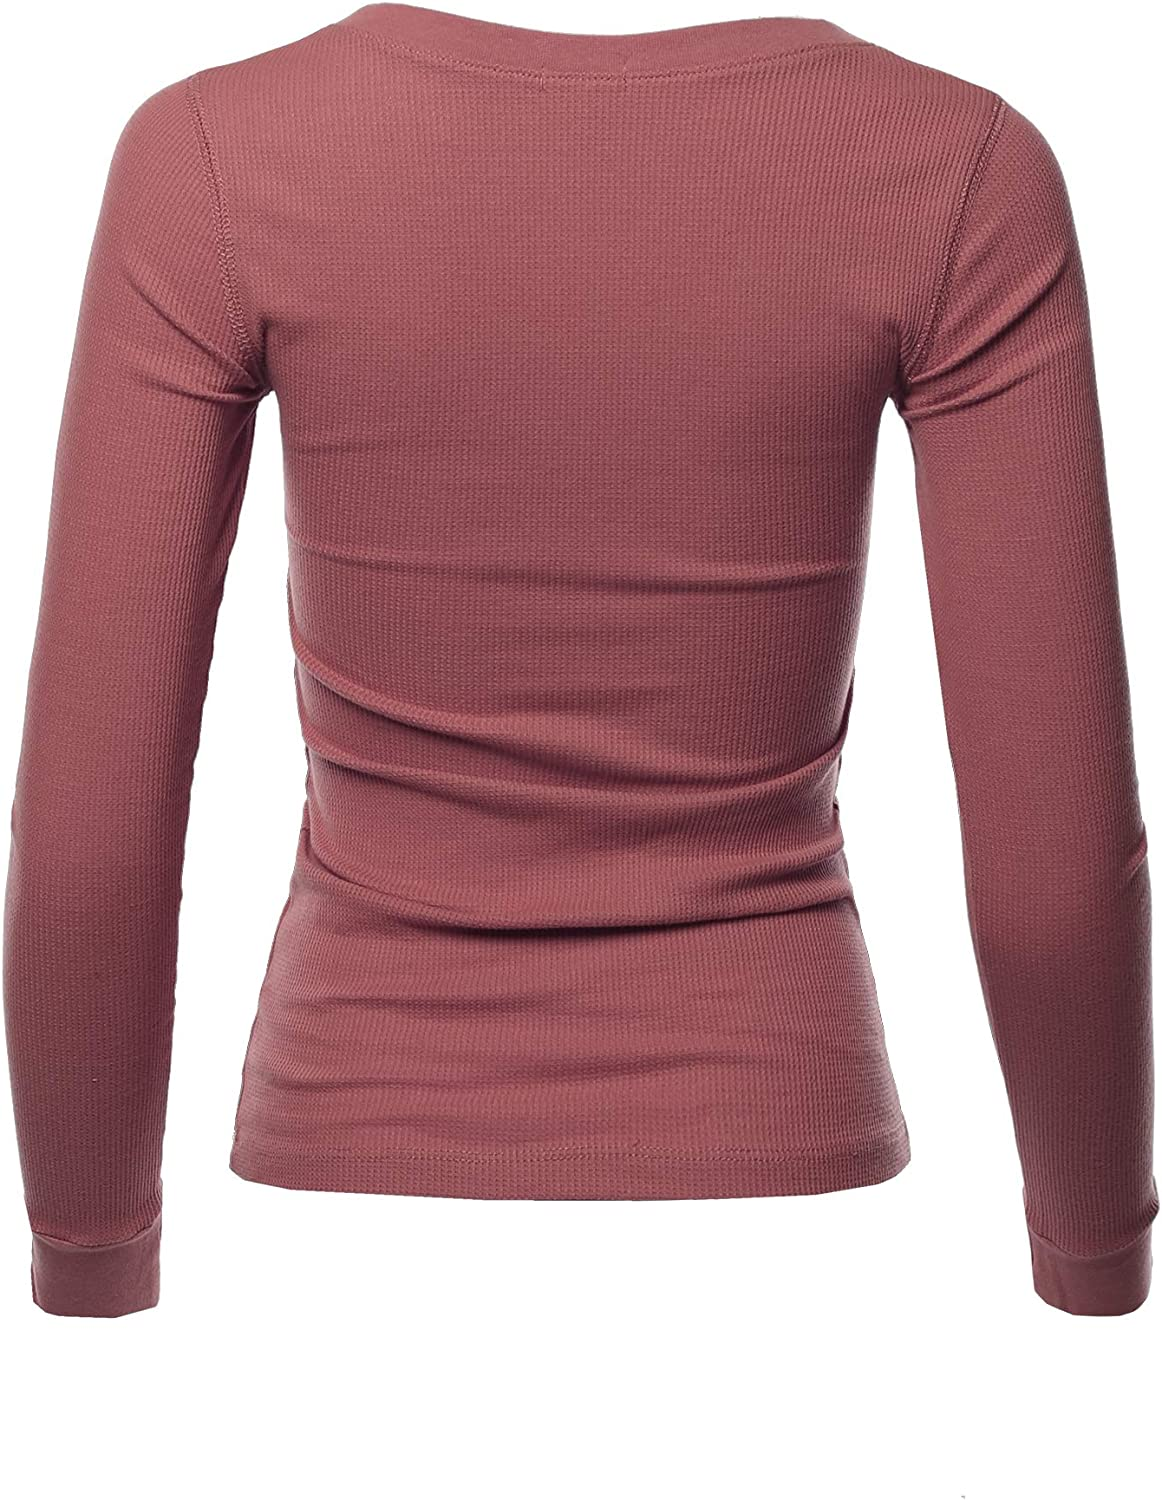 A2Y Womens Basic Solid Long Sleeve Crew Neck Fitted Thermal Top Shirt